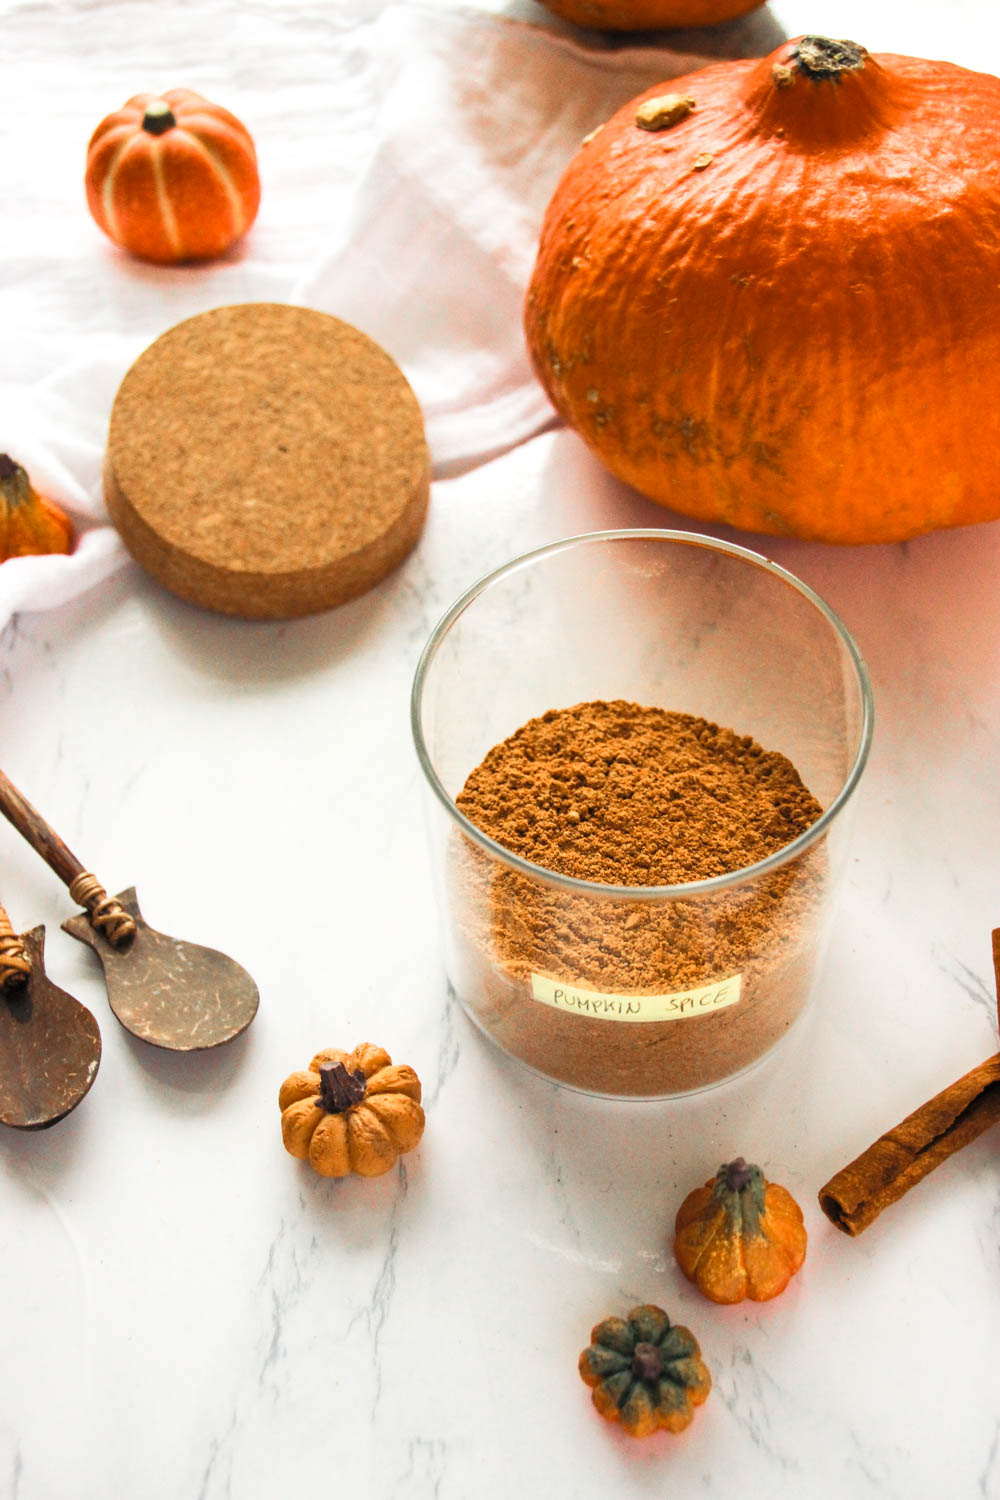 Pumpkin Pie Spice Blend in a jar with cinnamon, wooden spoons and pumpkin on the side.